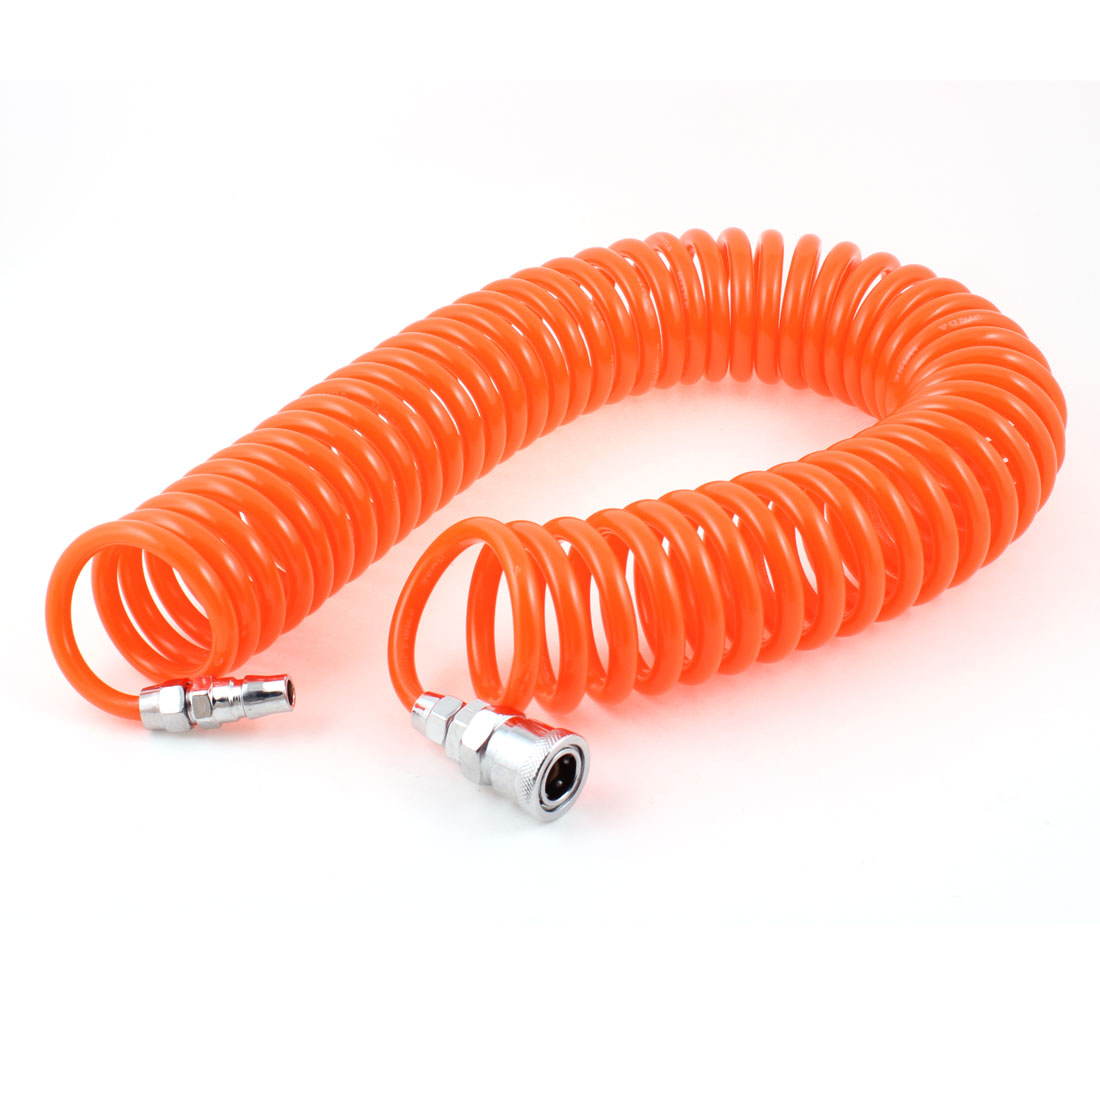 9M 29.5 Ft 8mm x 5mm Flexible PU Recoil Hose Tube for Compressor Air Tool